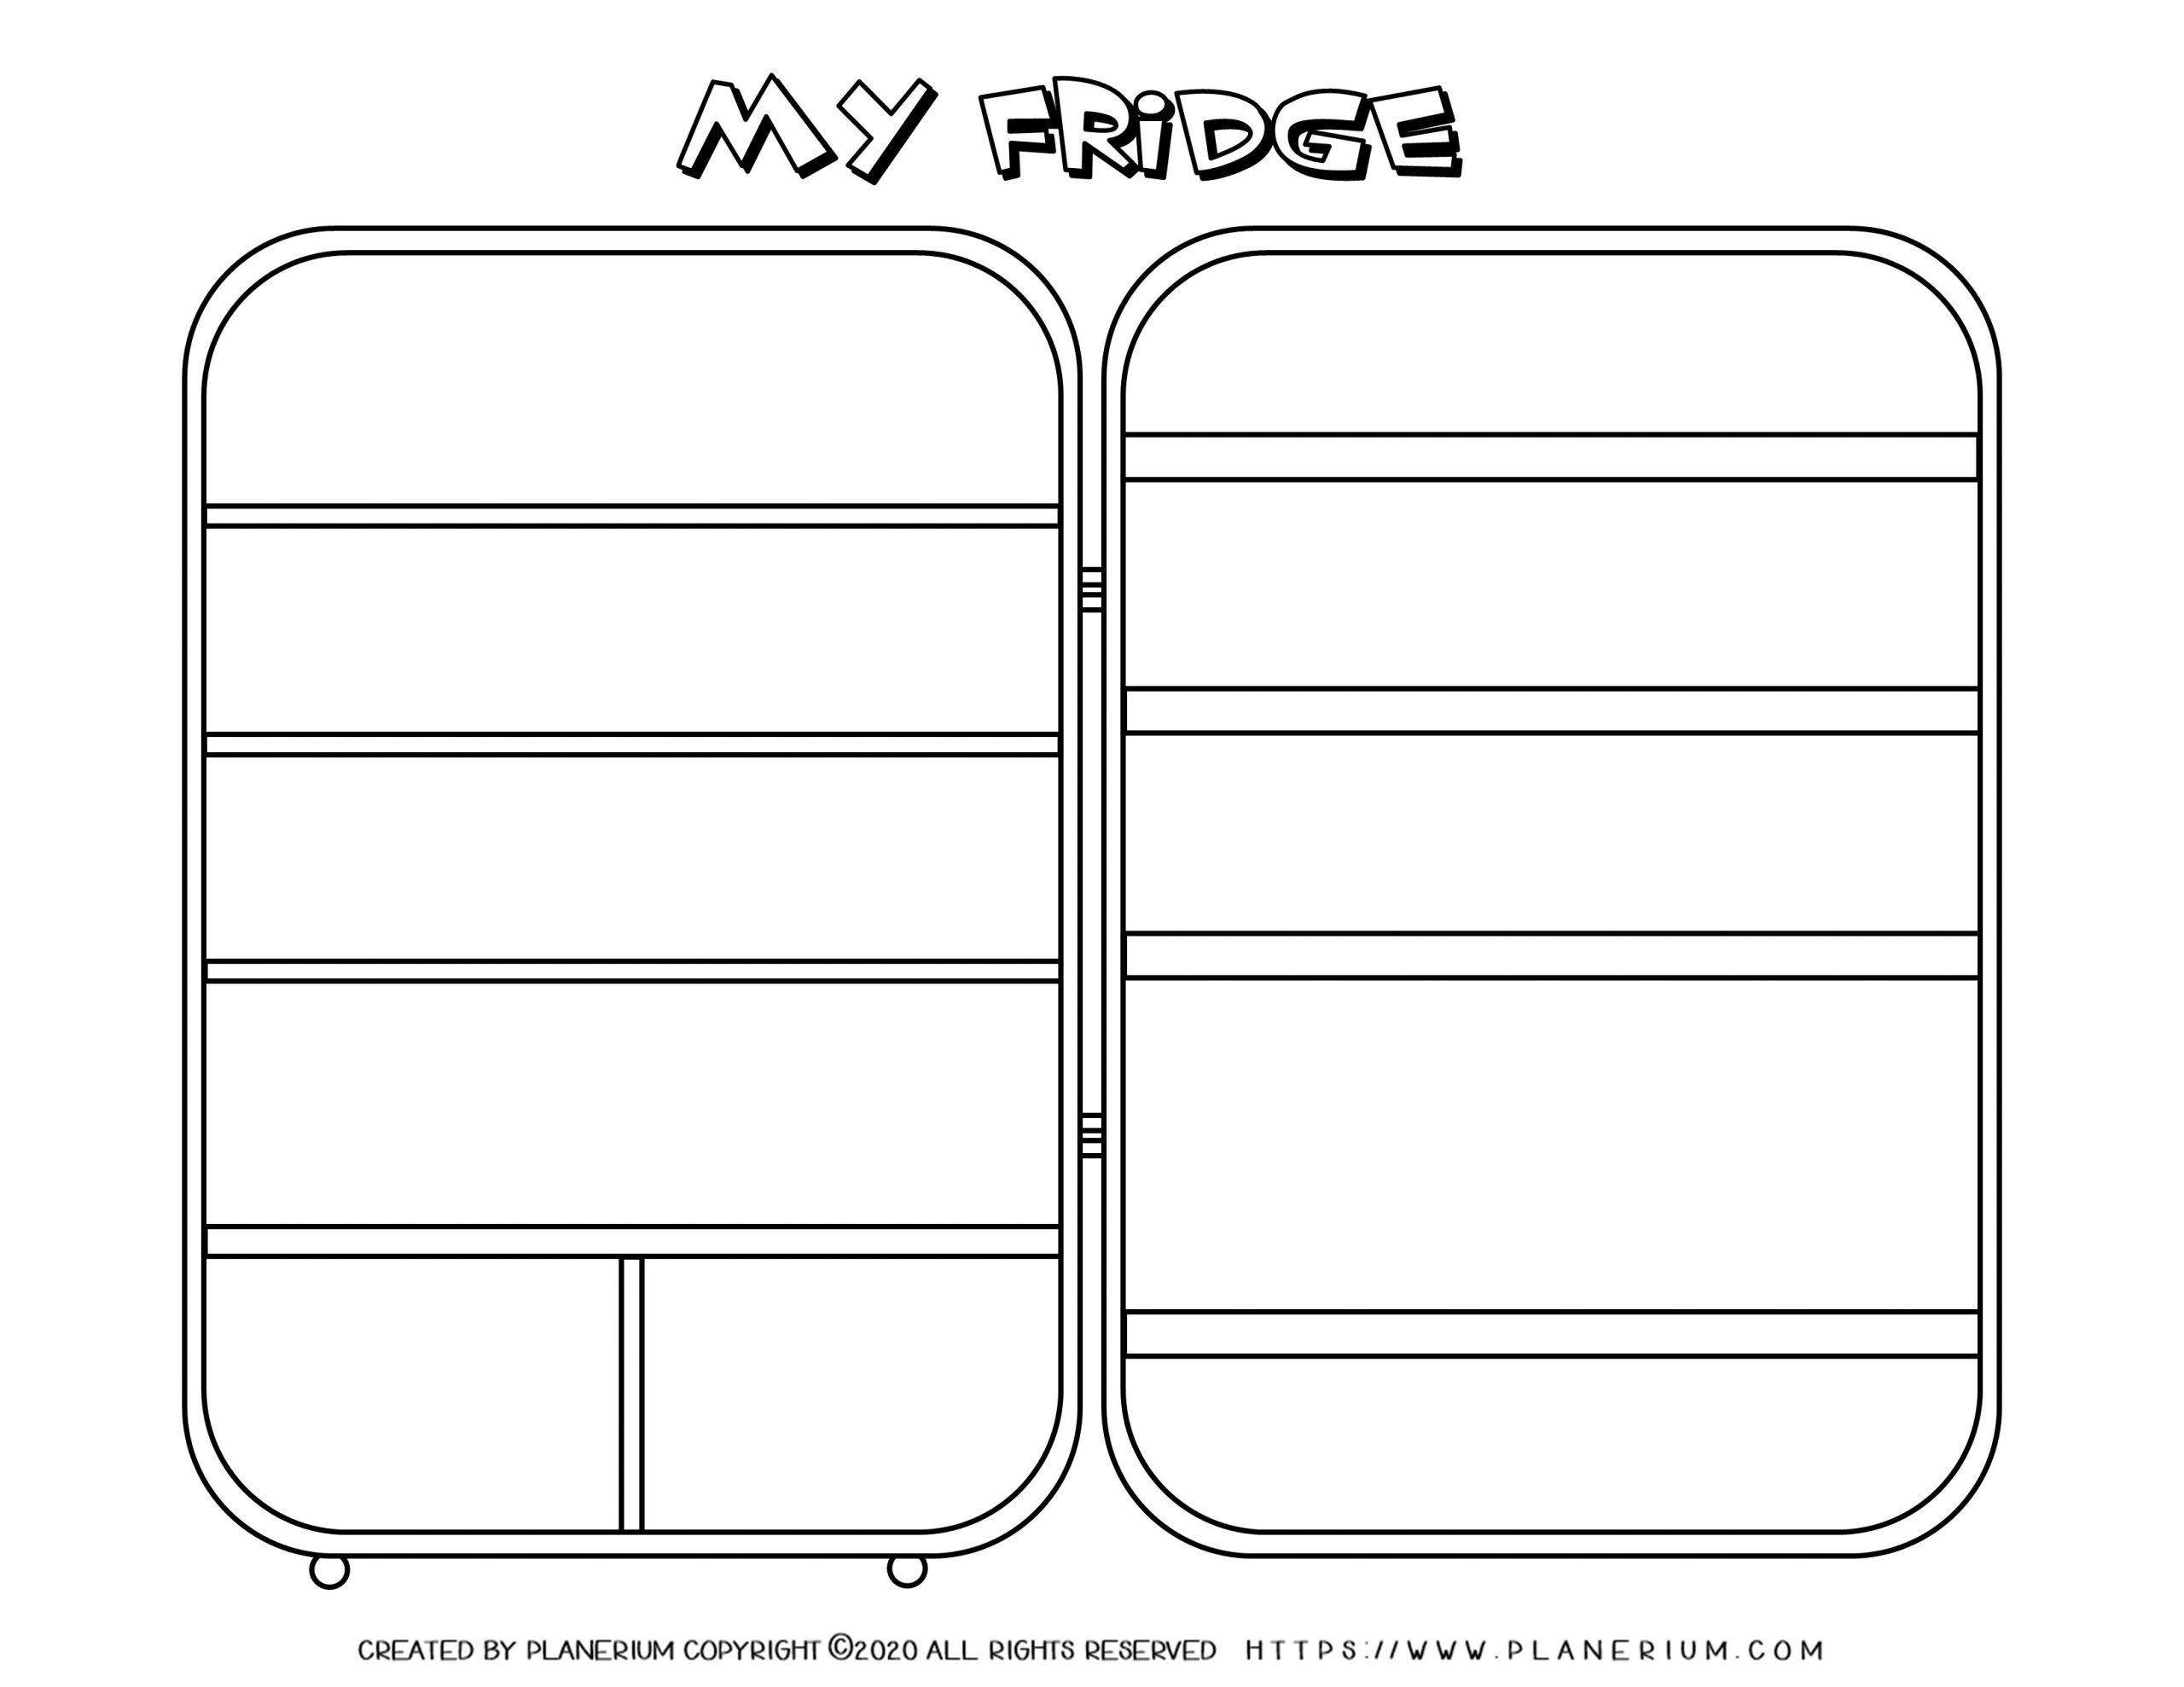 My Home - Coloring Page - My Fridge